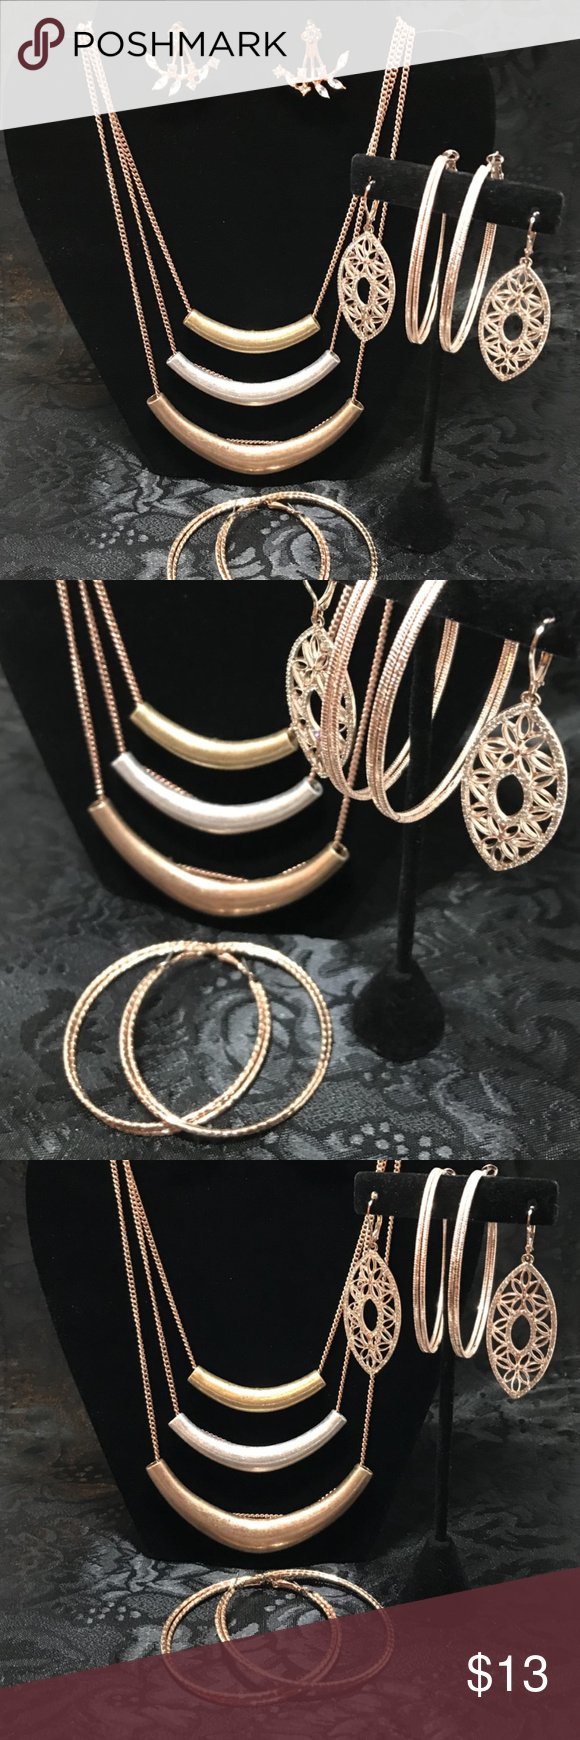 Multi Strand Rose Gold Necklace 4 Pair Earrings Rose Gold Necklace Womens Jewelry Necklace Gold Necklace